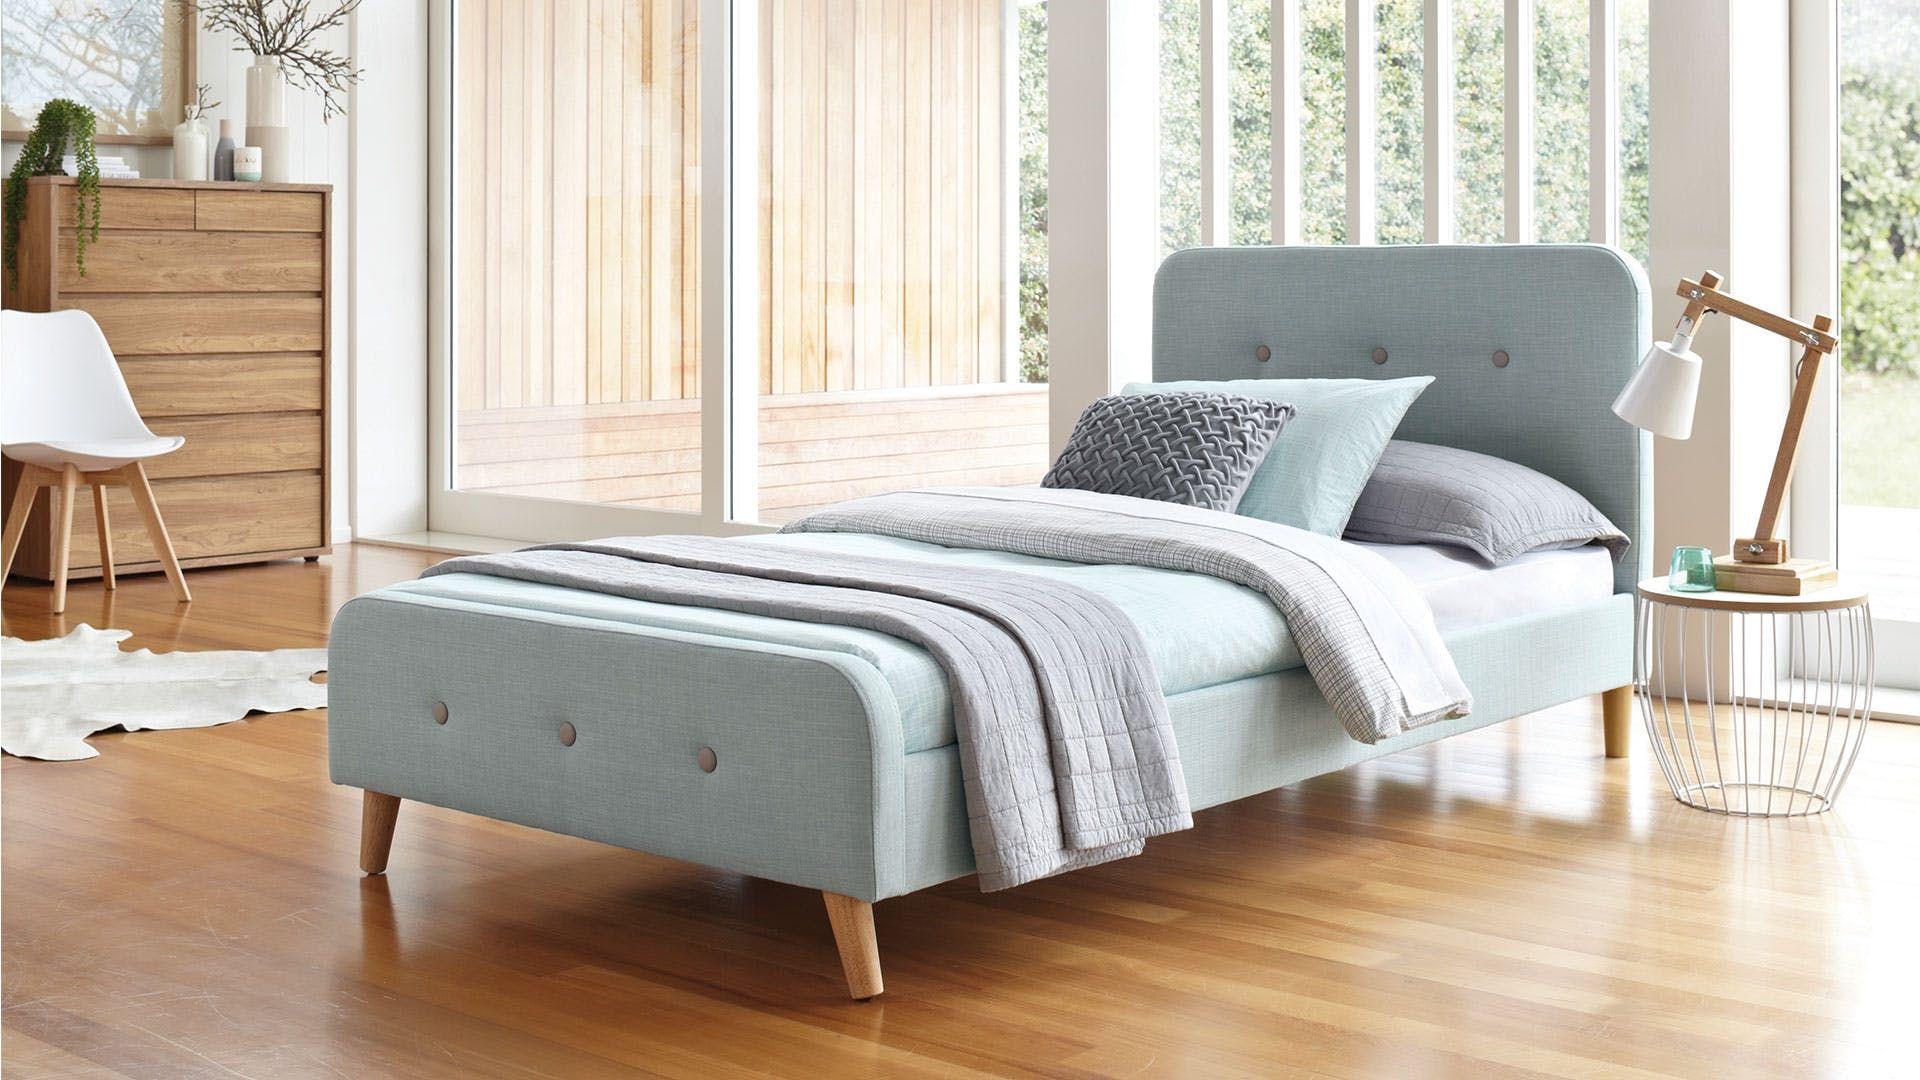 Calypso King Single Bed Frame By Nero Furniture Single Bed Frame